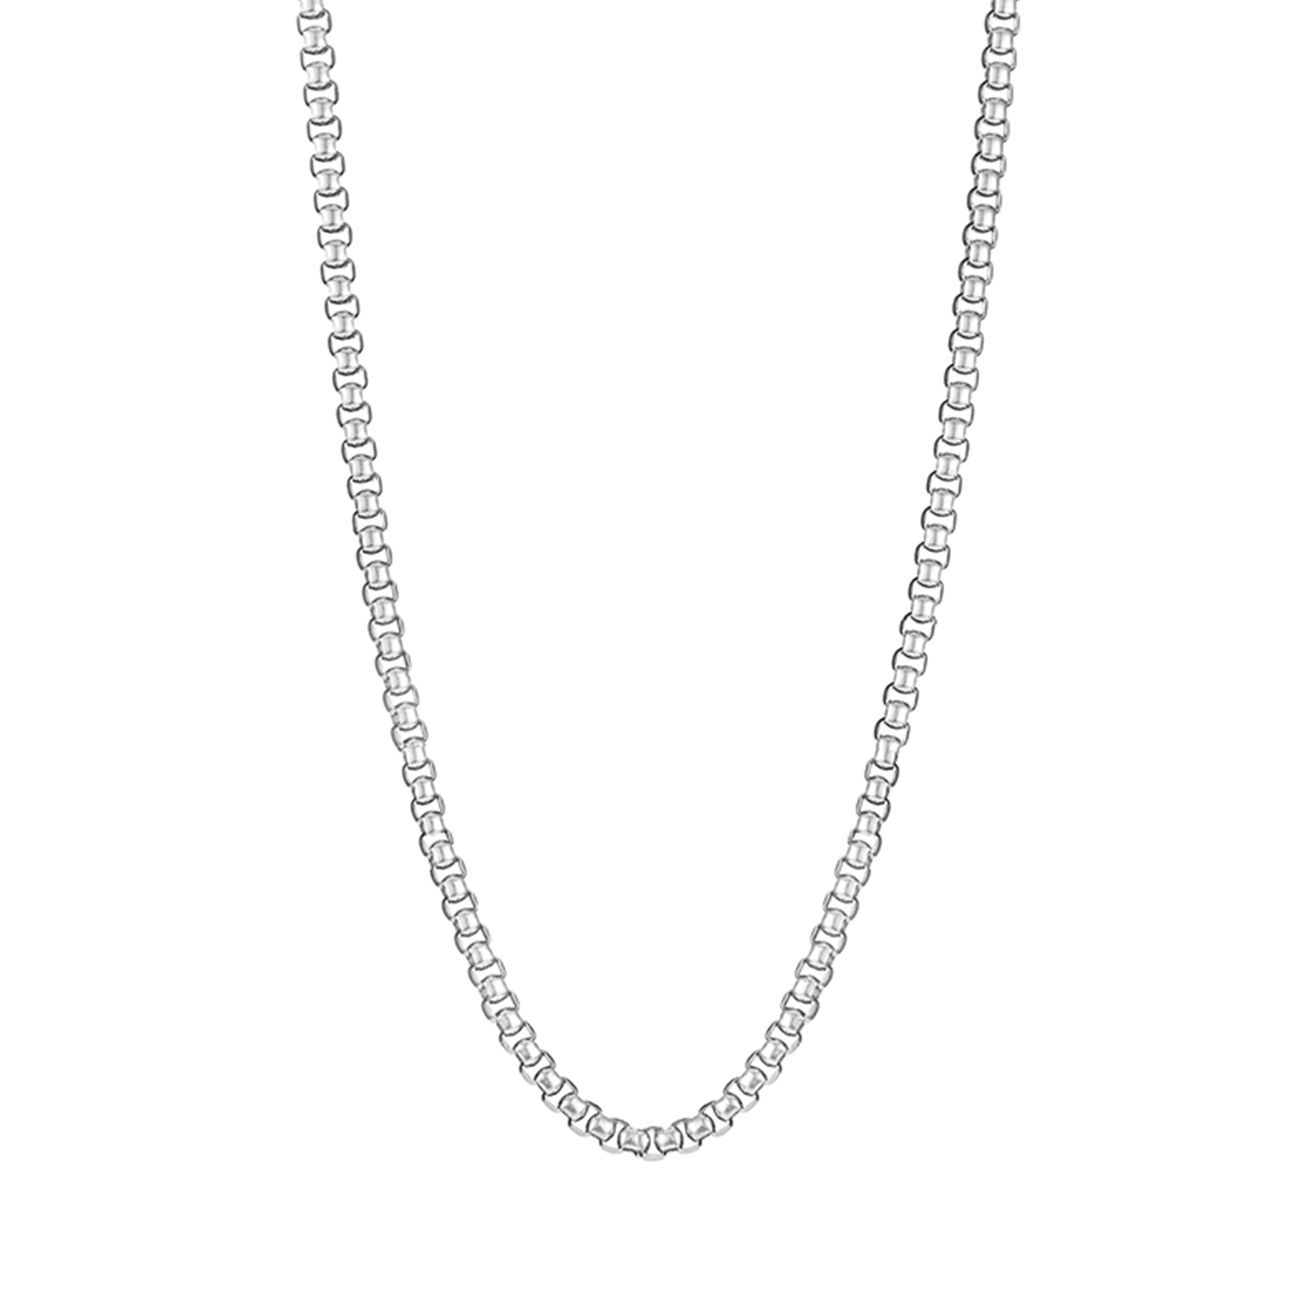 Extra long antique chain Freya Necklace in silver by JENNY BIRD